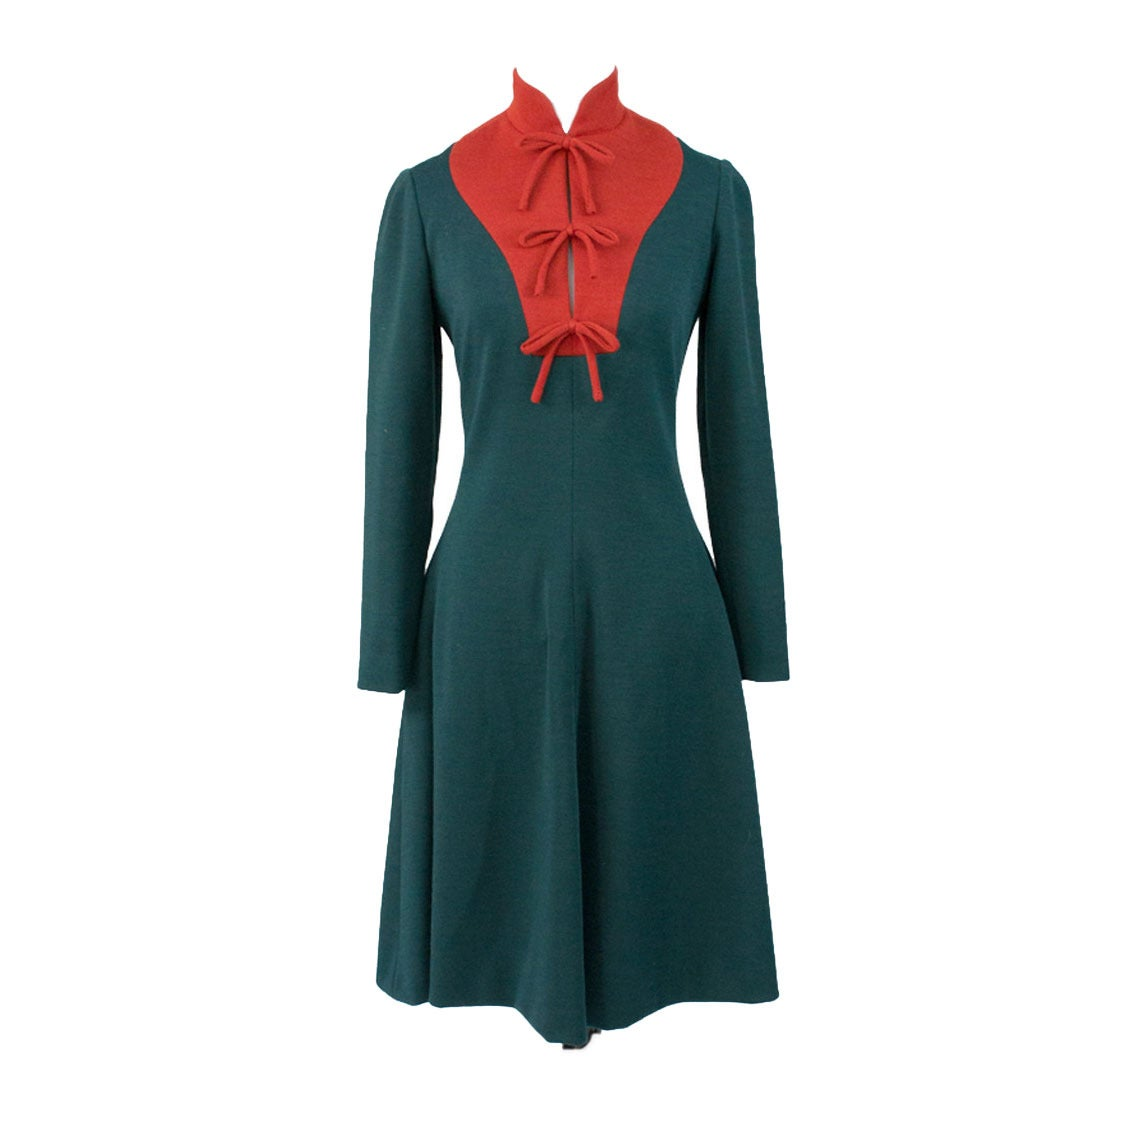 Geoffrey Beene Boutique Vintage Dress Red Green Early 1970s For Sale